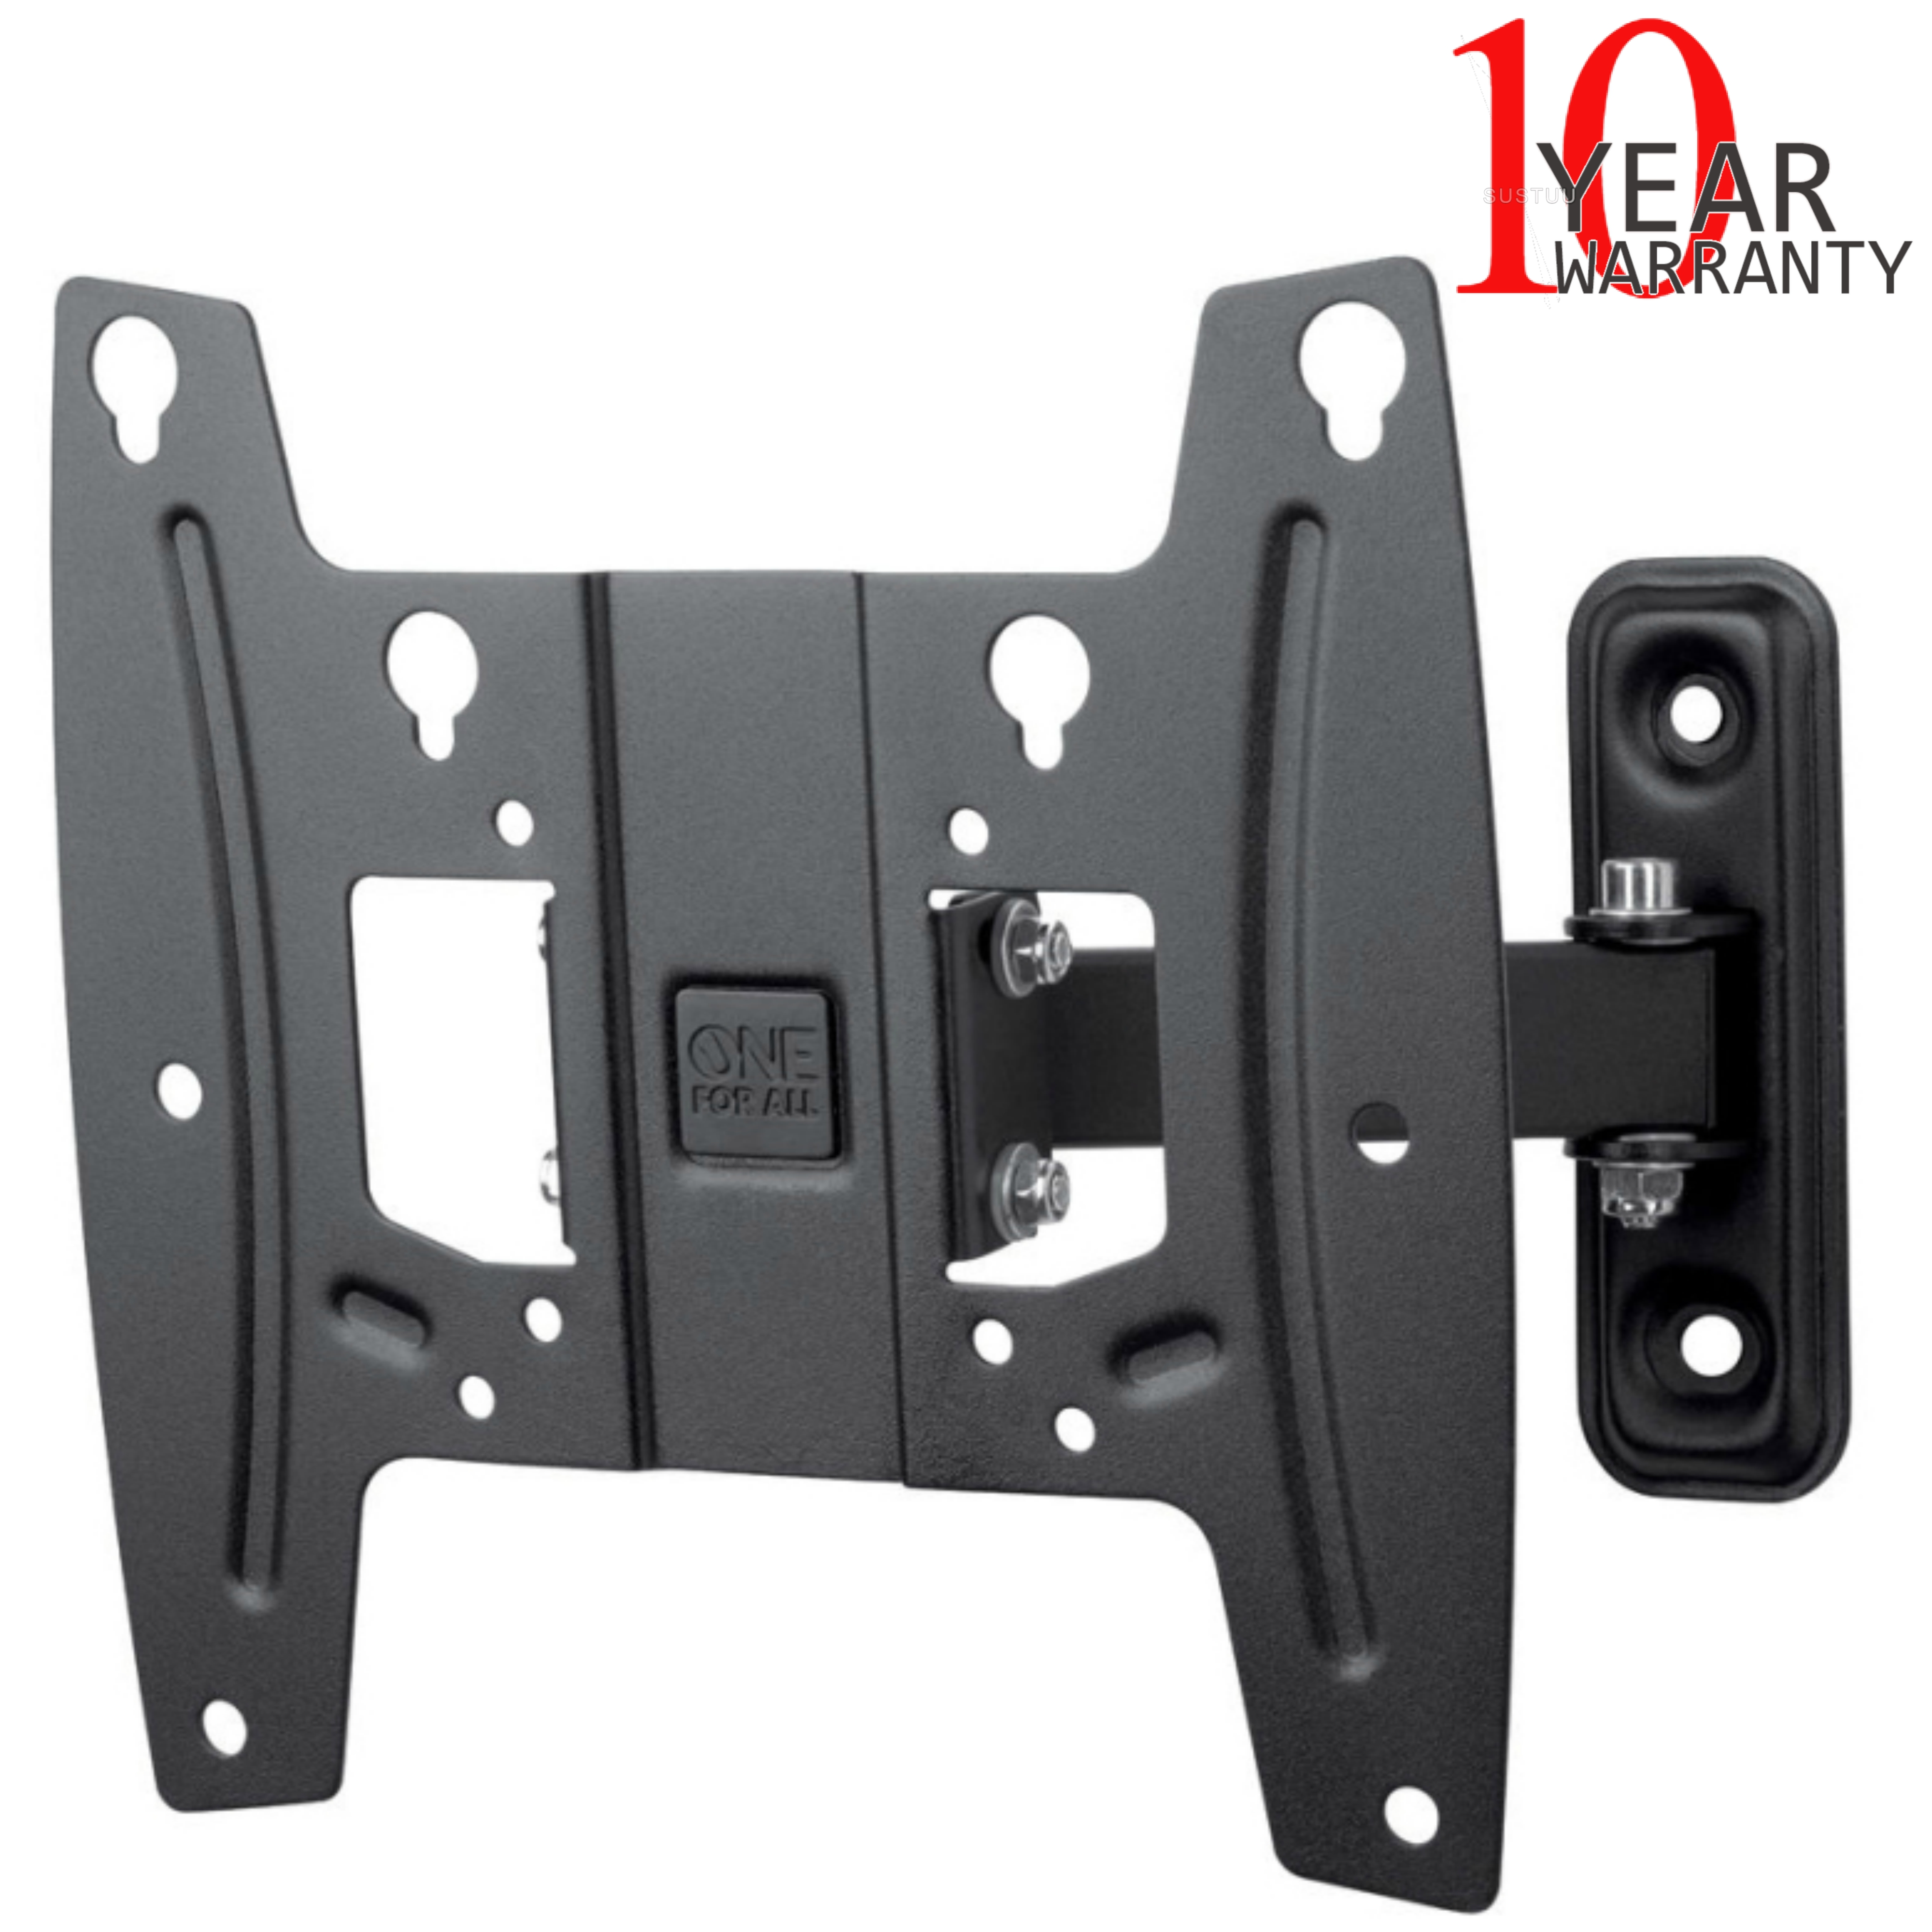 One For All 19-42 inch TV Bracket Stand | Turn 90 | Solid Series | Robust Desgn | WM4241